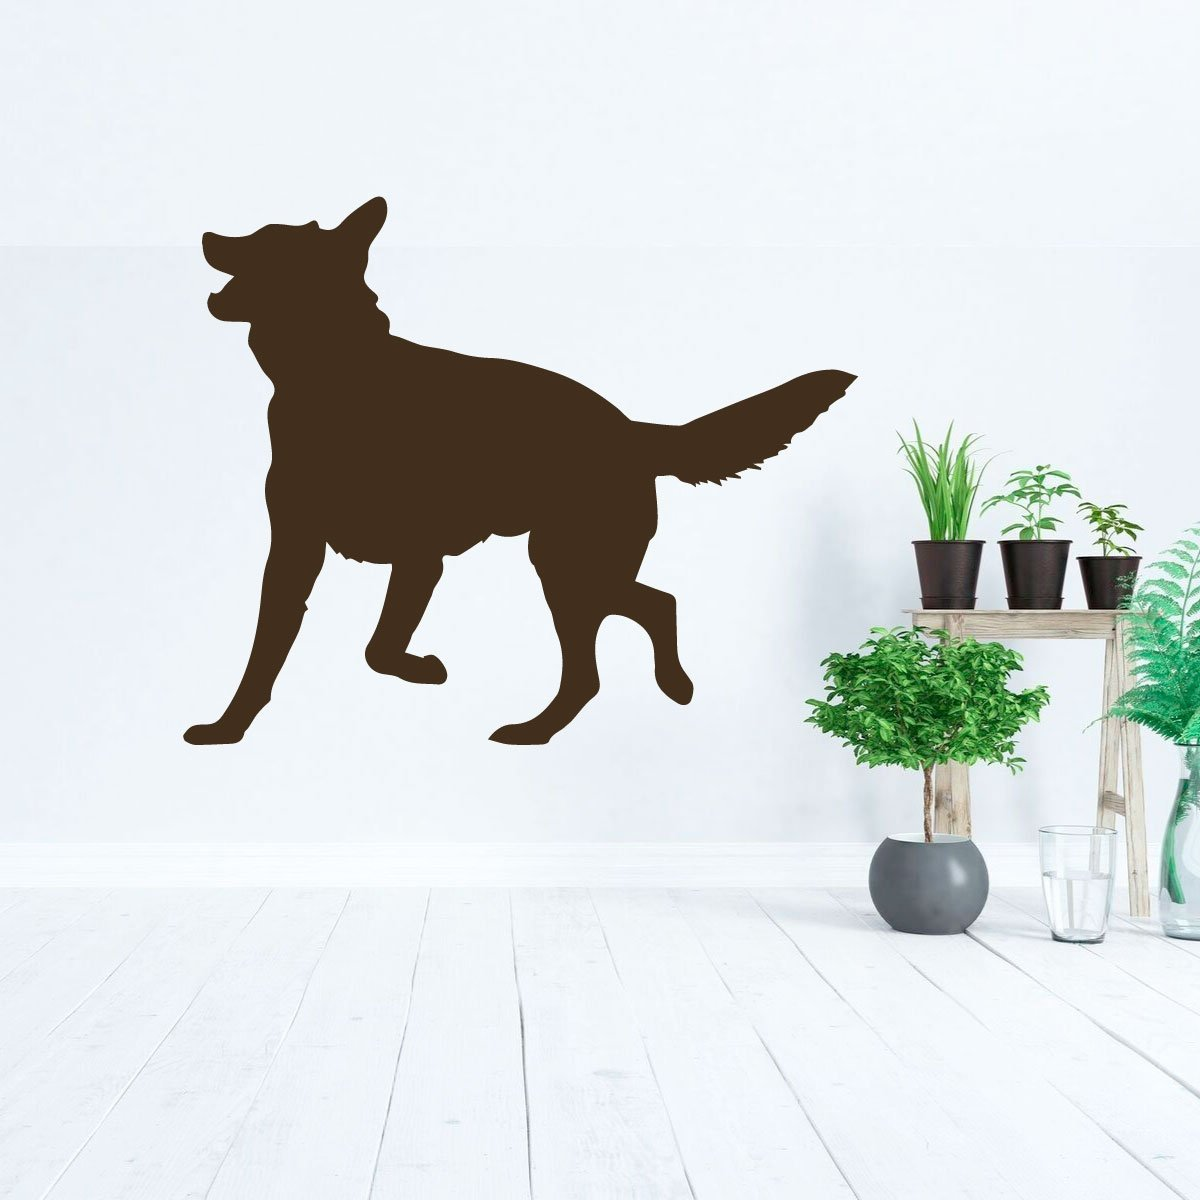 Dog Decor - Vinyl Wall Decor